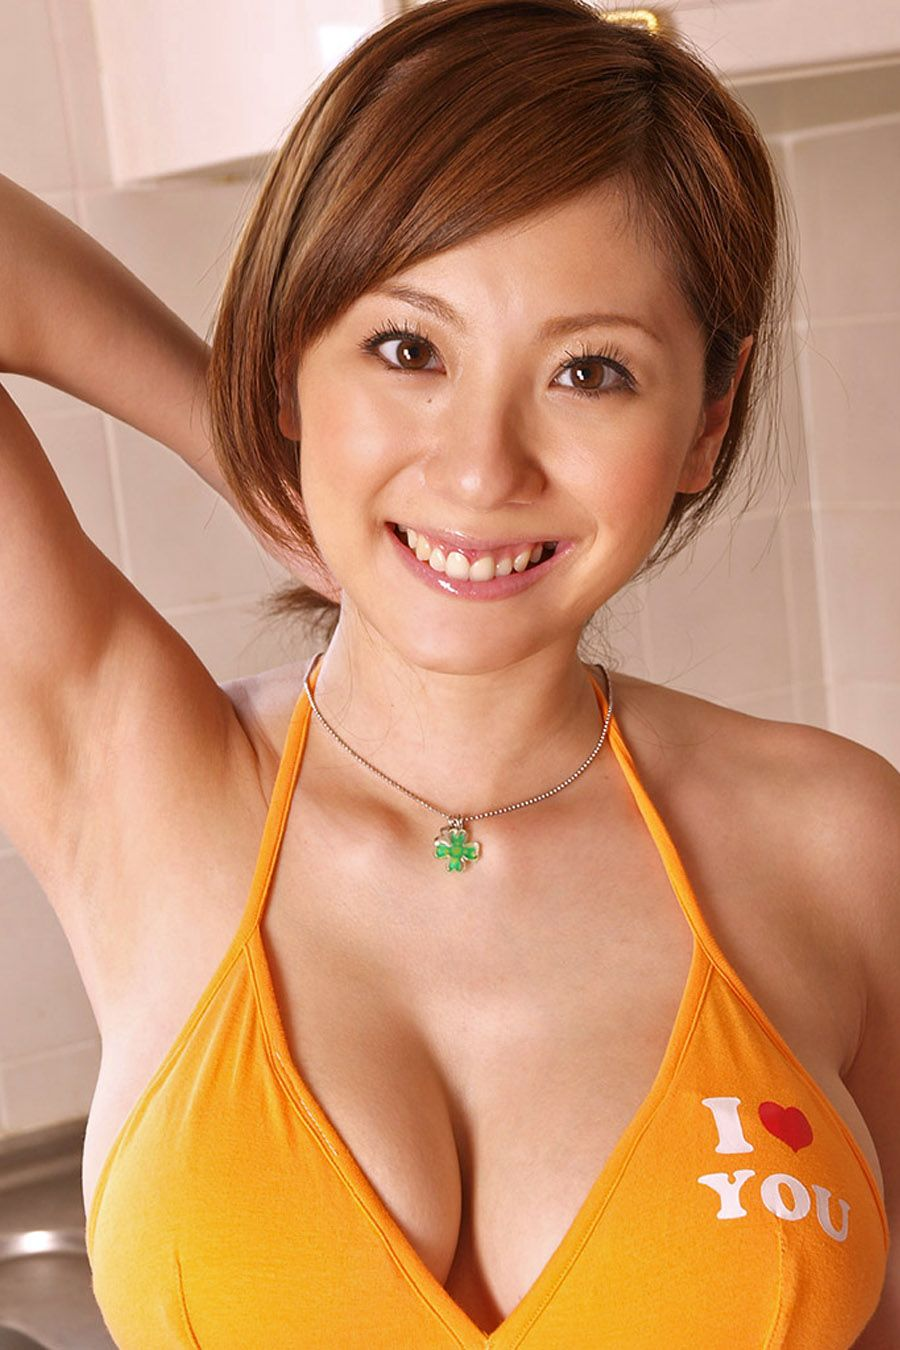 yuma asami 麻美ゆま | yuma asami | pinterest | girls